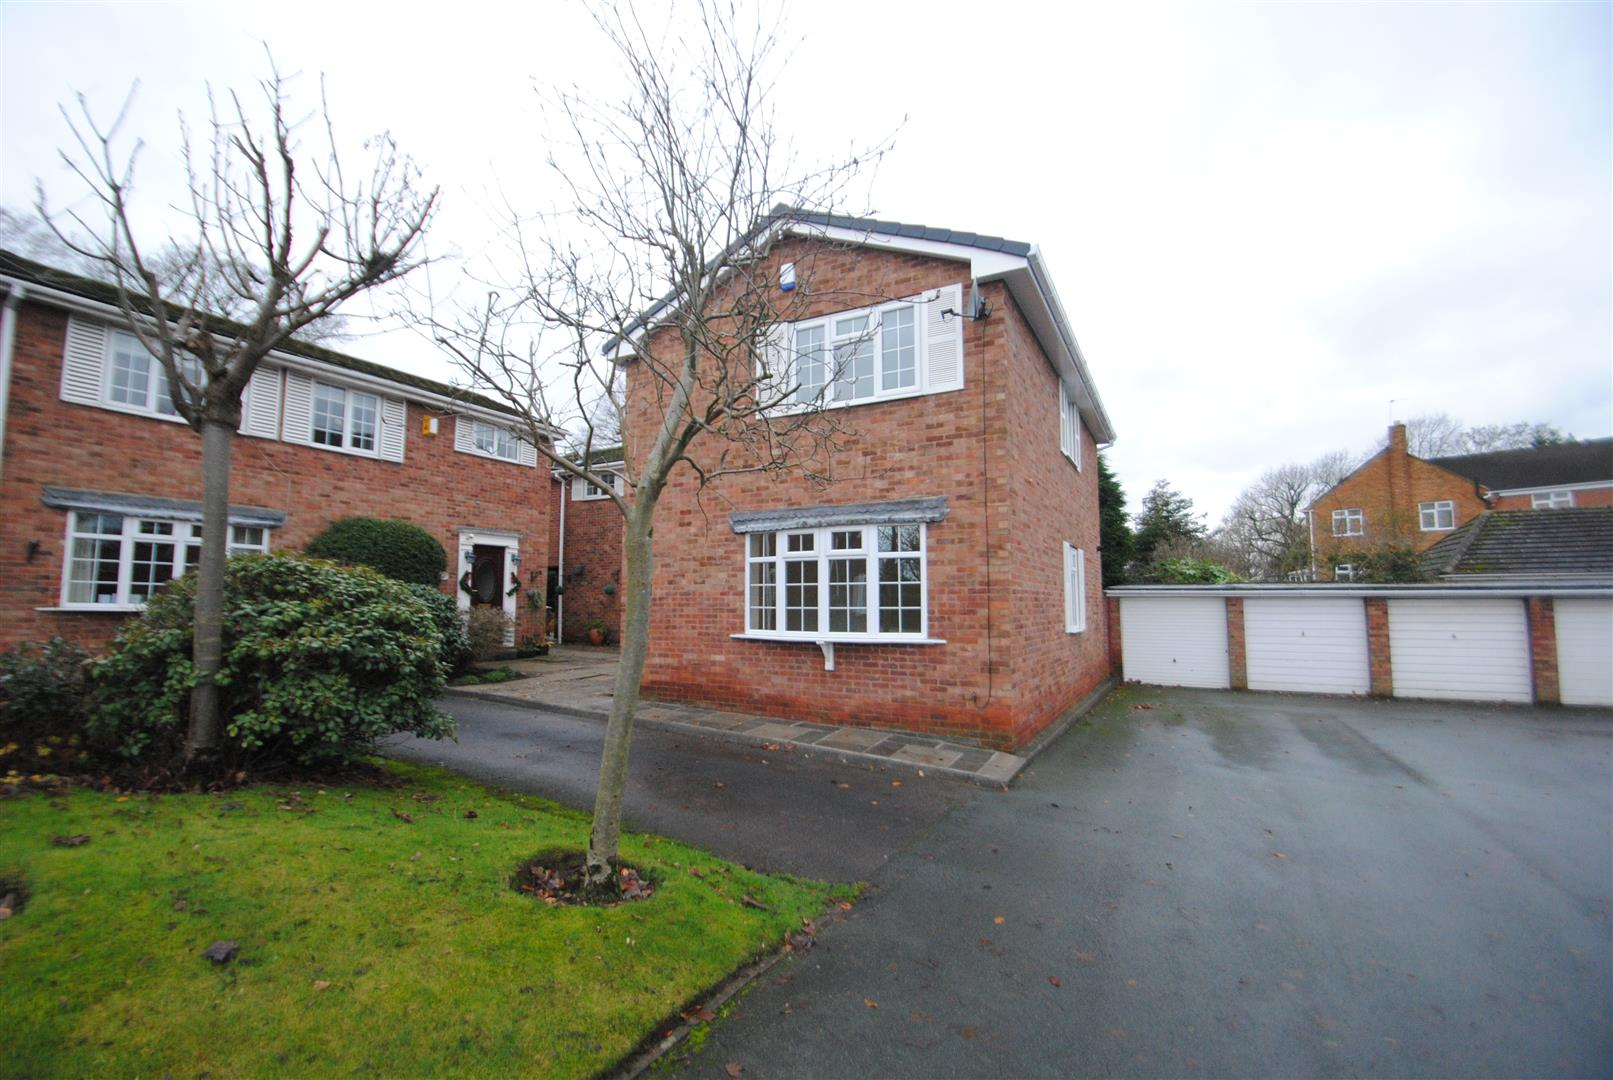 3 Bedrooms Link Detached House for rent in Barrymore Court, GRAPPENHALL, Warrington, WA4